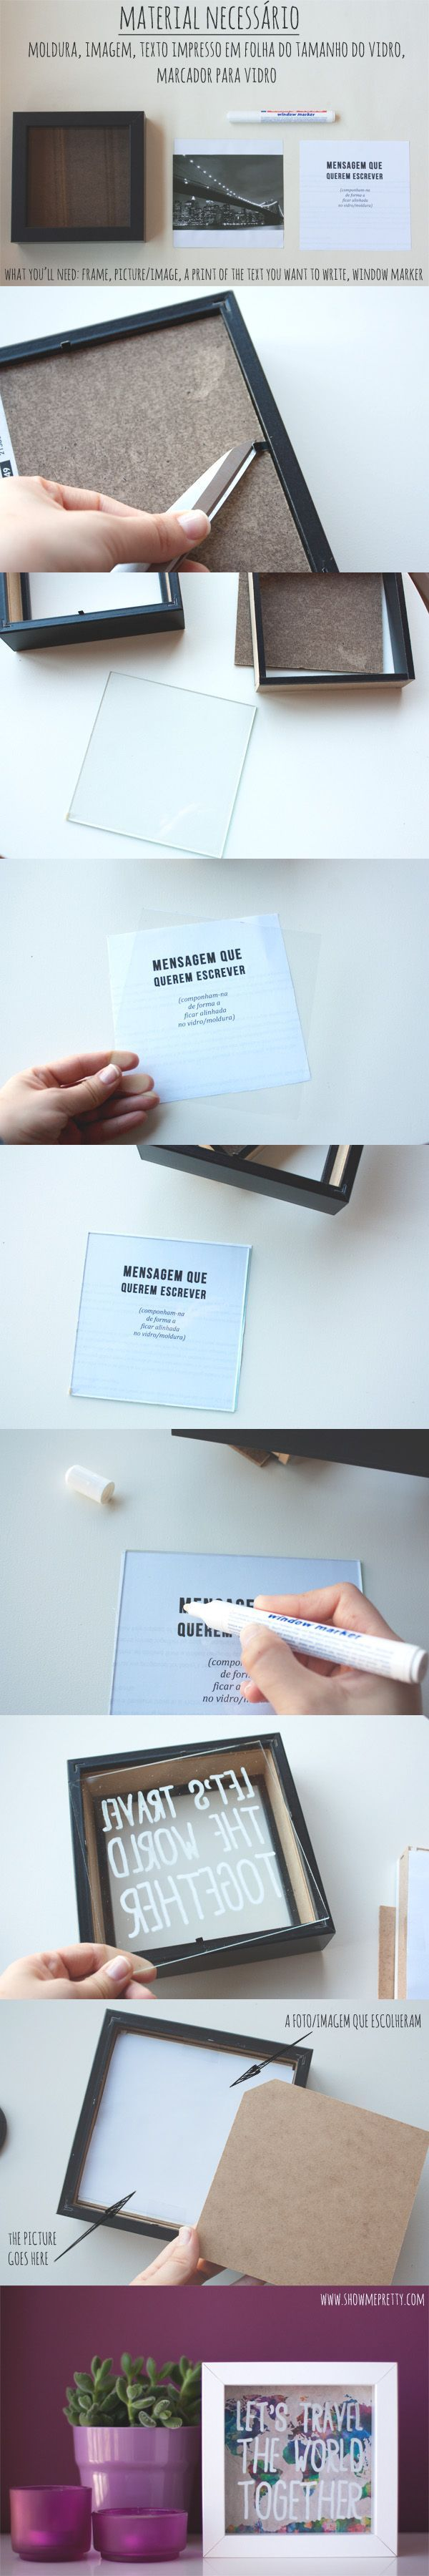 35 Easy DIY Gift Ideas People Actually Want - the cutest bookmark idea! Great gift for a grandparent.